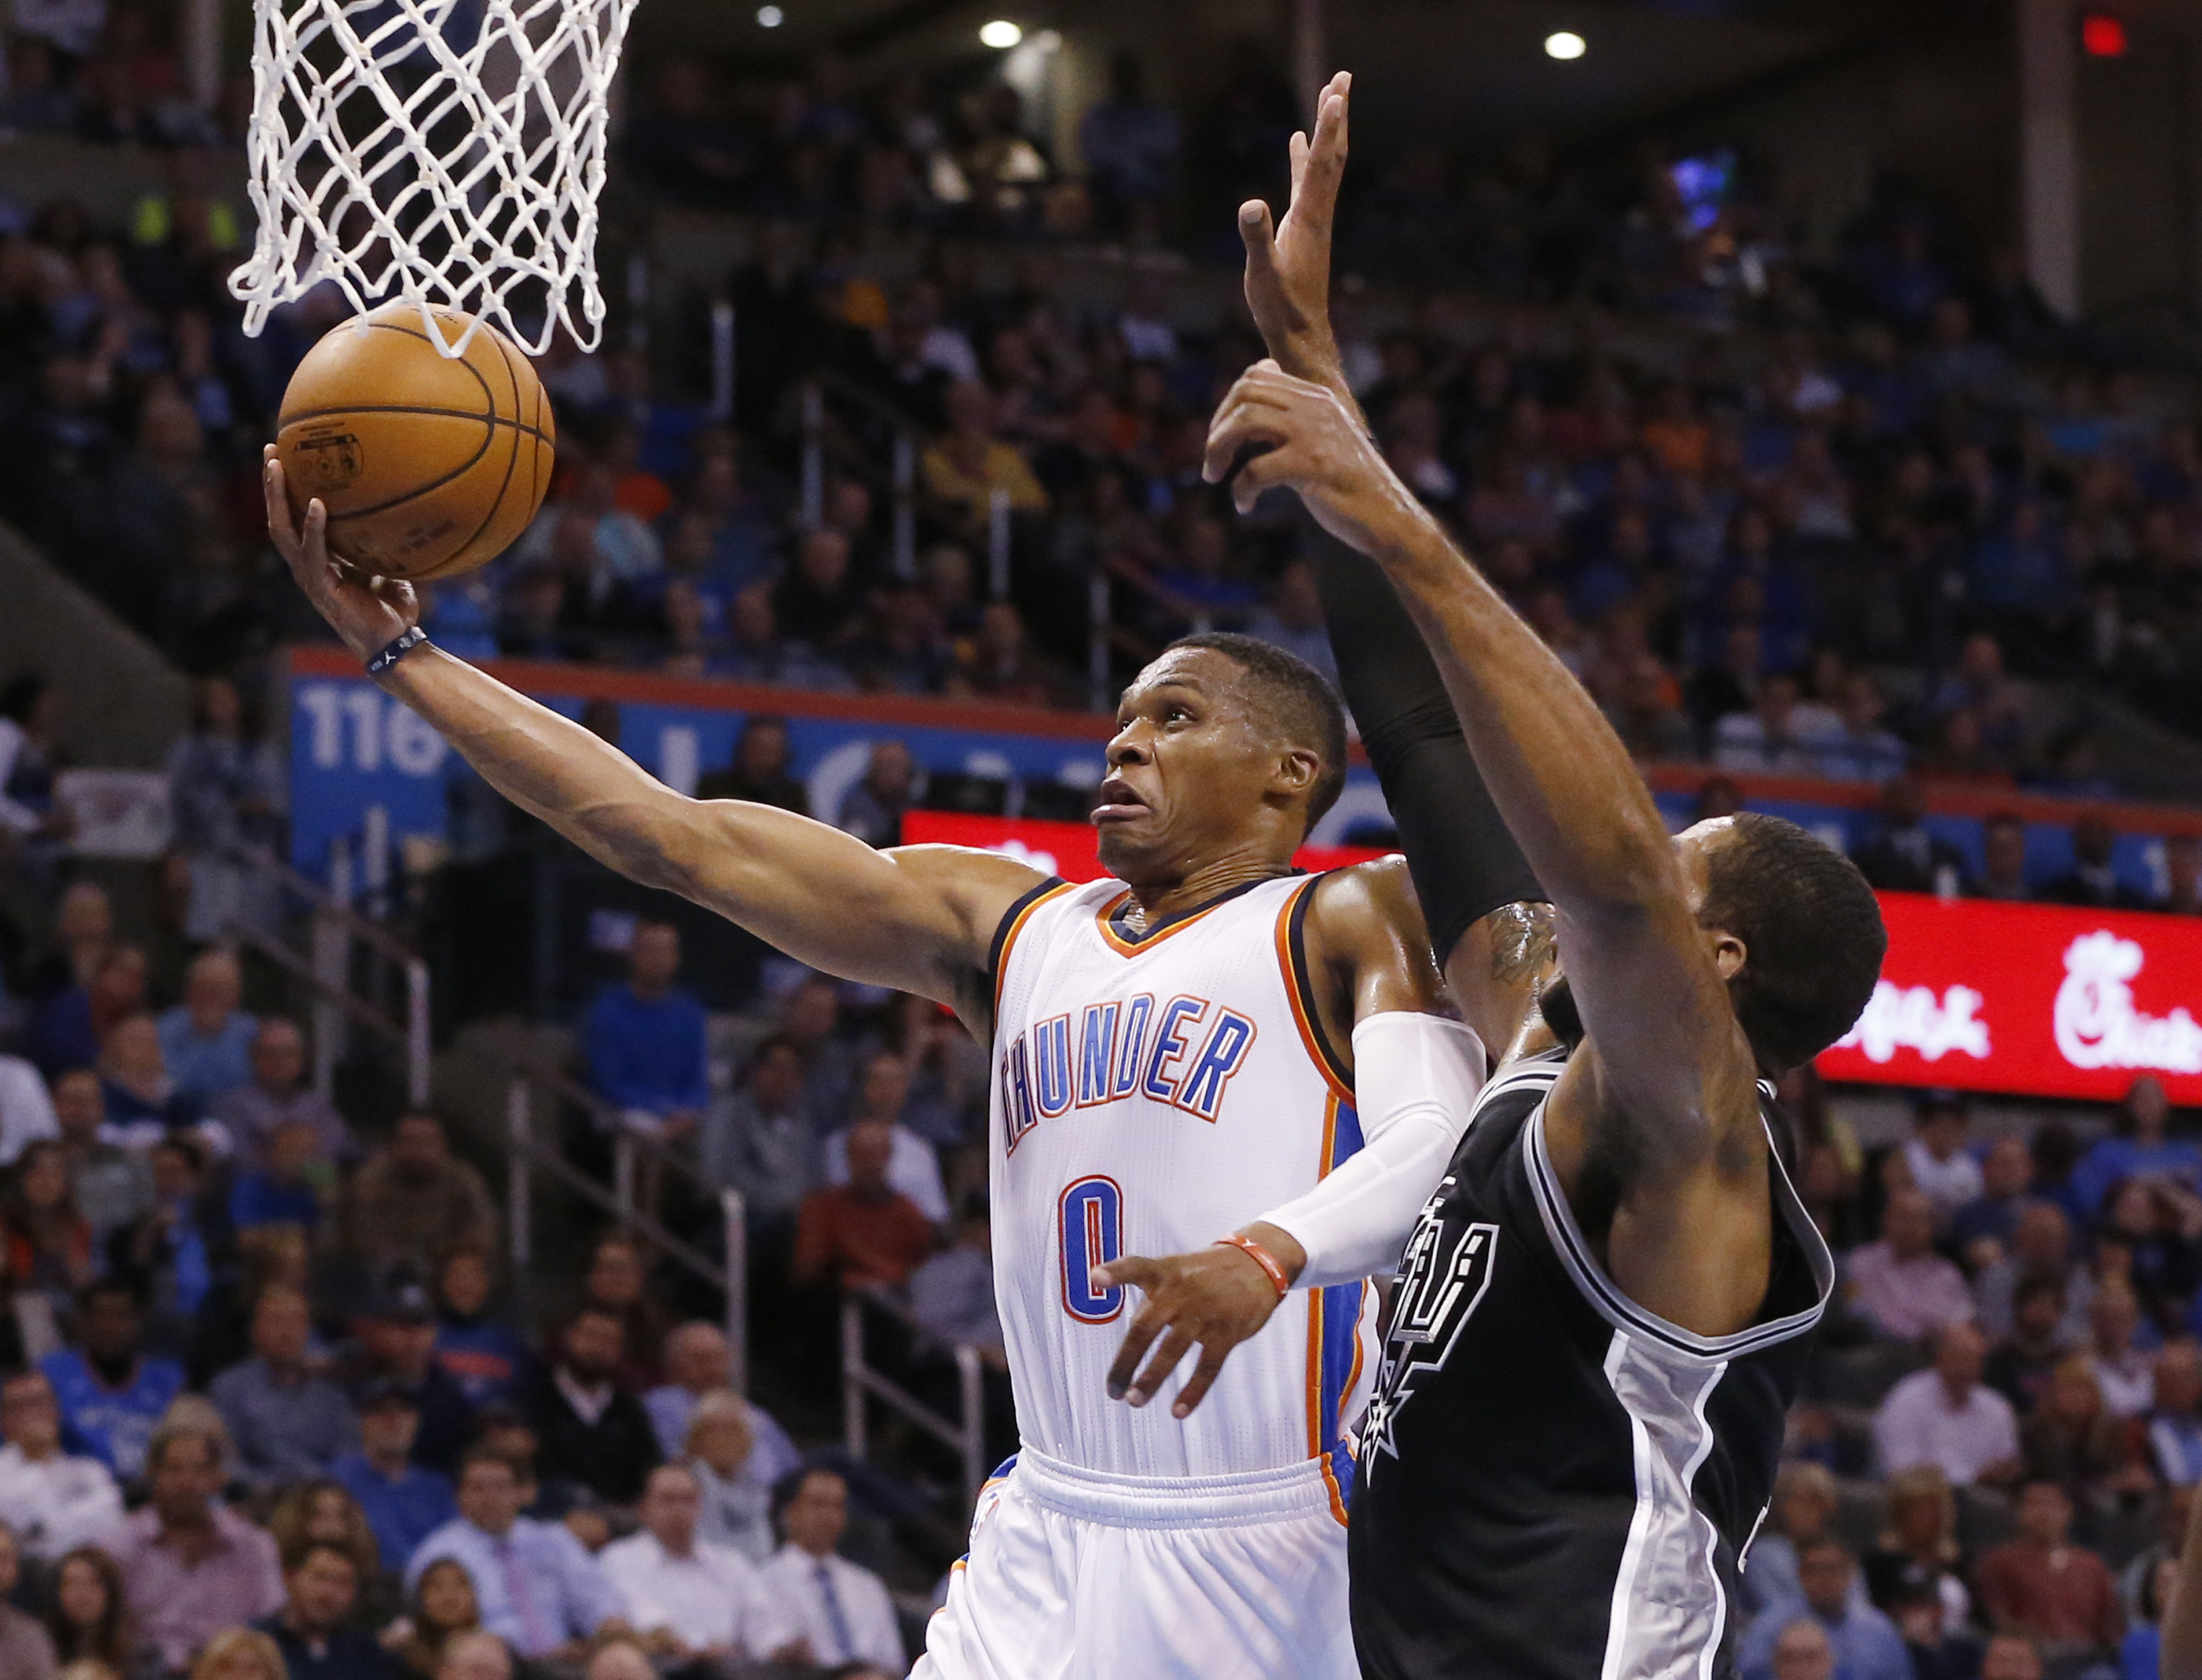 Oklahoma City Thunder guard Russell Westbrook (0) shoots in front of San Antonio Spurs forward LaMarcus Aldridge, right, in the first quarter of an NBA basketball game in Oklahoma City, Wednesday, Oct. 28, 2015. (AP Photo/Sue Ogrocki)